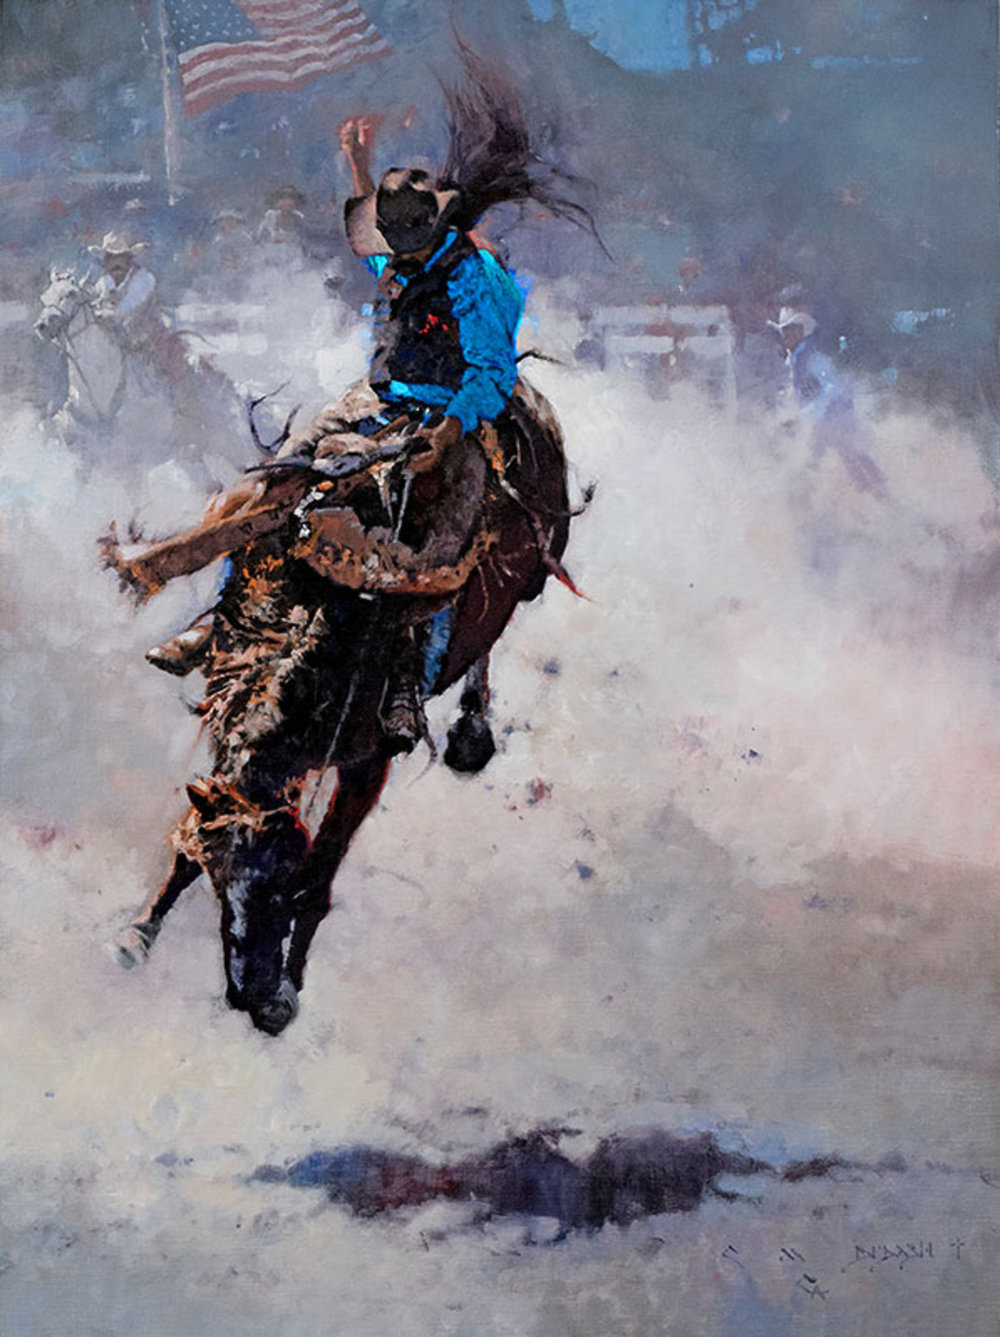 """*****SOLD***** """"RODEO - FLYIN' HIGH"""" Oil on Linen 32"""" x 24"""" Sold at Quest For The West, The Eiteljorg Museum  Indianapolis, IN Sept 8-9, 2017"""